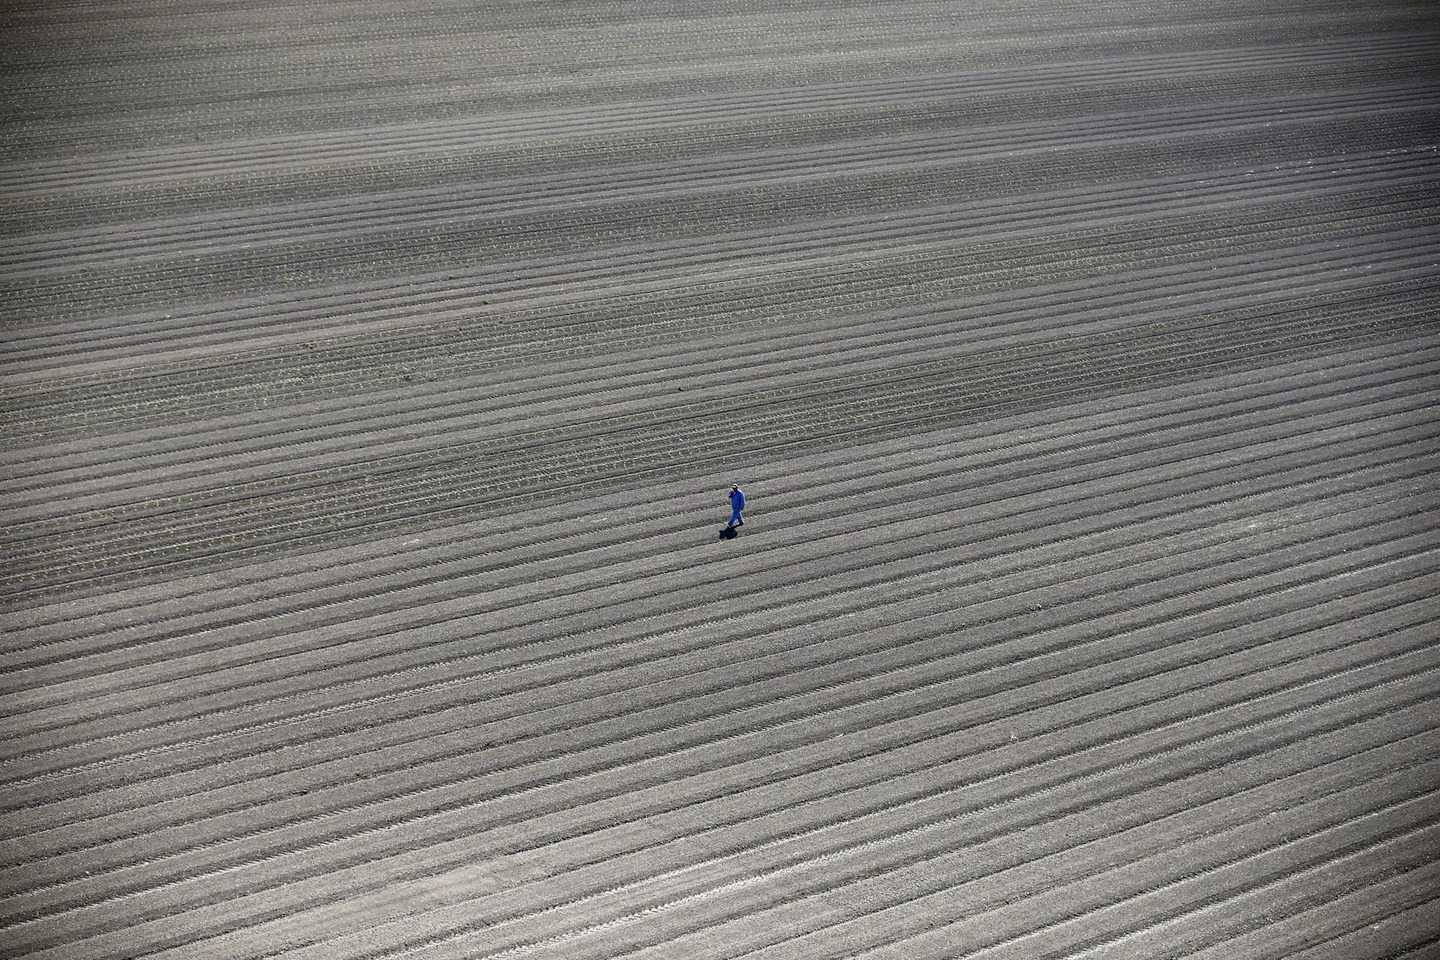 A worker walks through farm fields in Los Banos, California, United States, May 5, 2015. California water regulators on Tuesday adopted the state's first rules for mandatory cutbacks in urban water use as the region's catastrophic drought enters its fourth year. Urban users will be hardest hit, even though they account for only 20 percent of state water consumption, while the state's massive agricultural sector, which the Public Policy Institute of California says uses 80 percent of human-related consumption, has been exempted. REUTERS/Lucy Nicholson TPX IMAGES OF THE DAY - RTX1BQUX